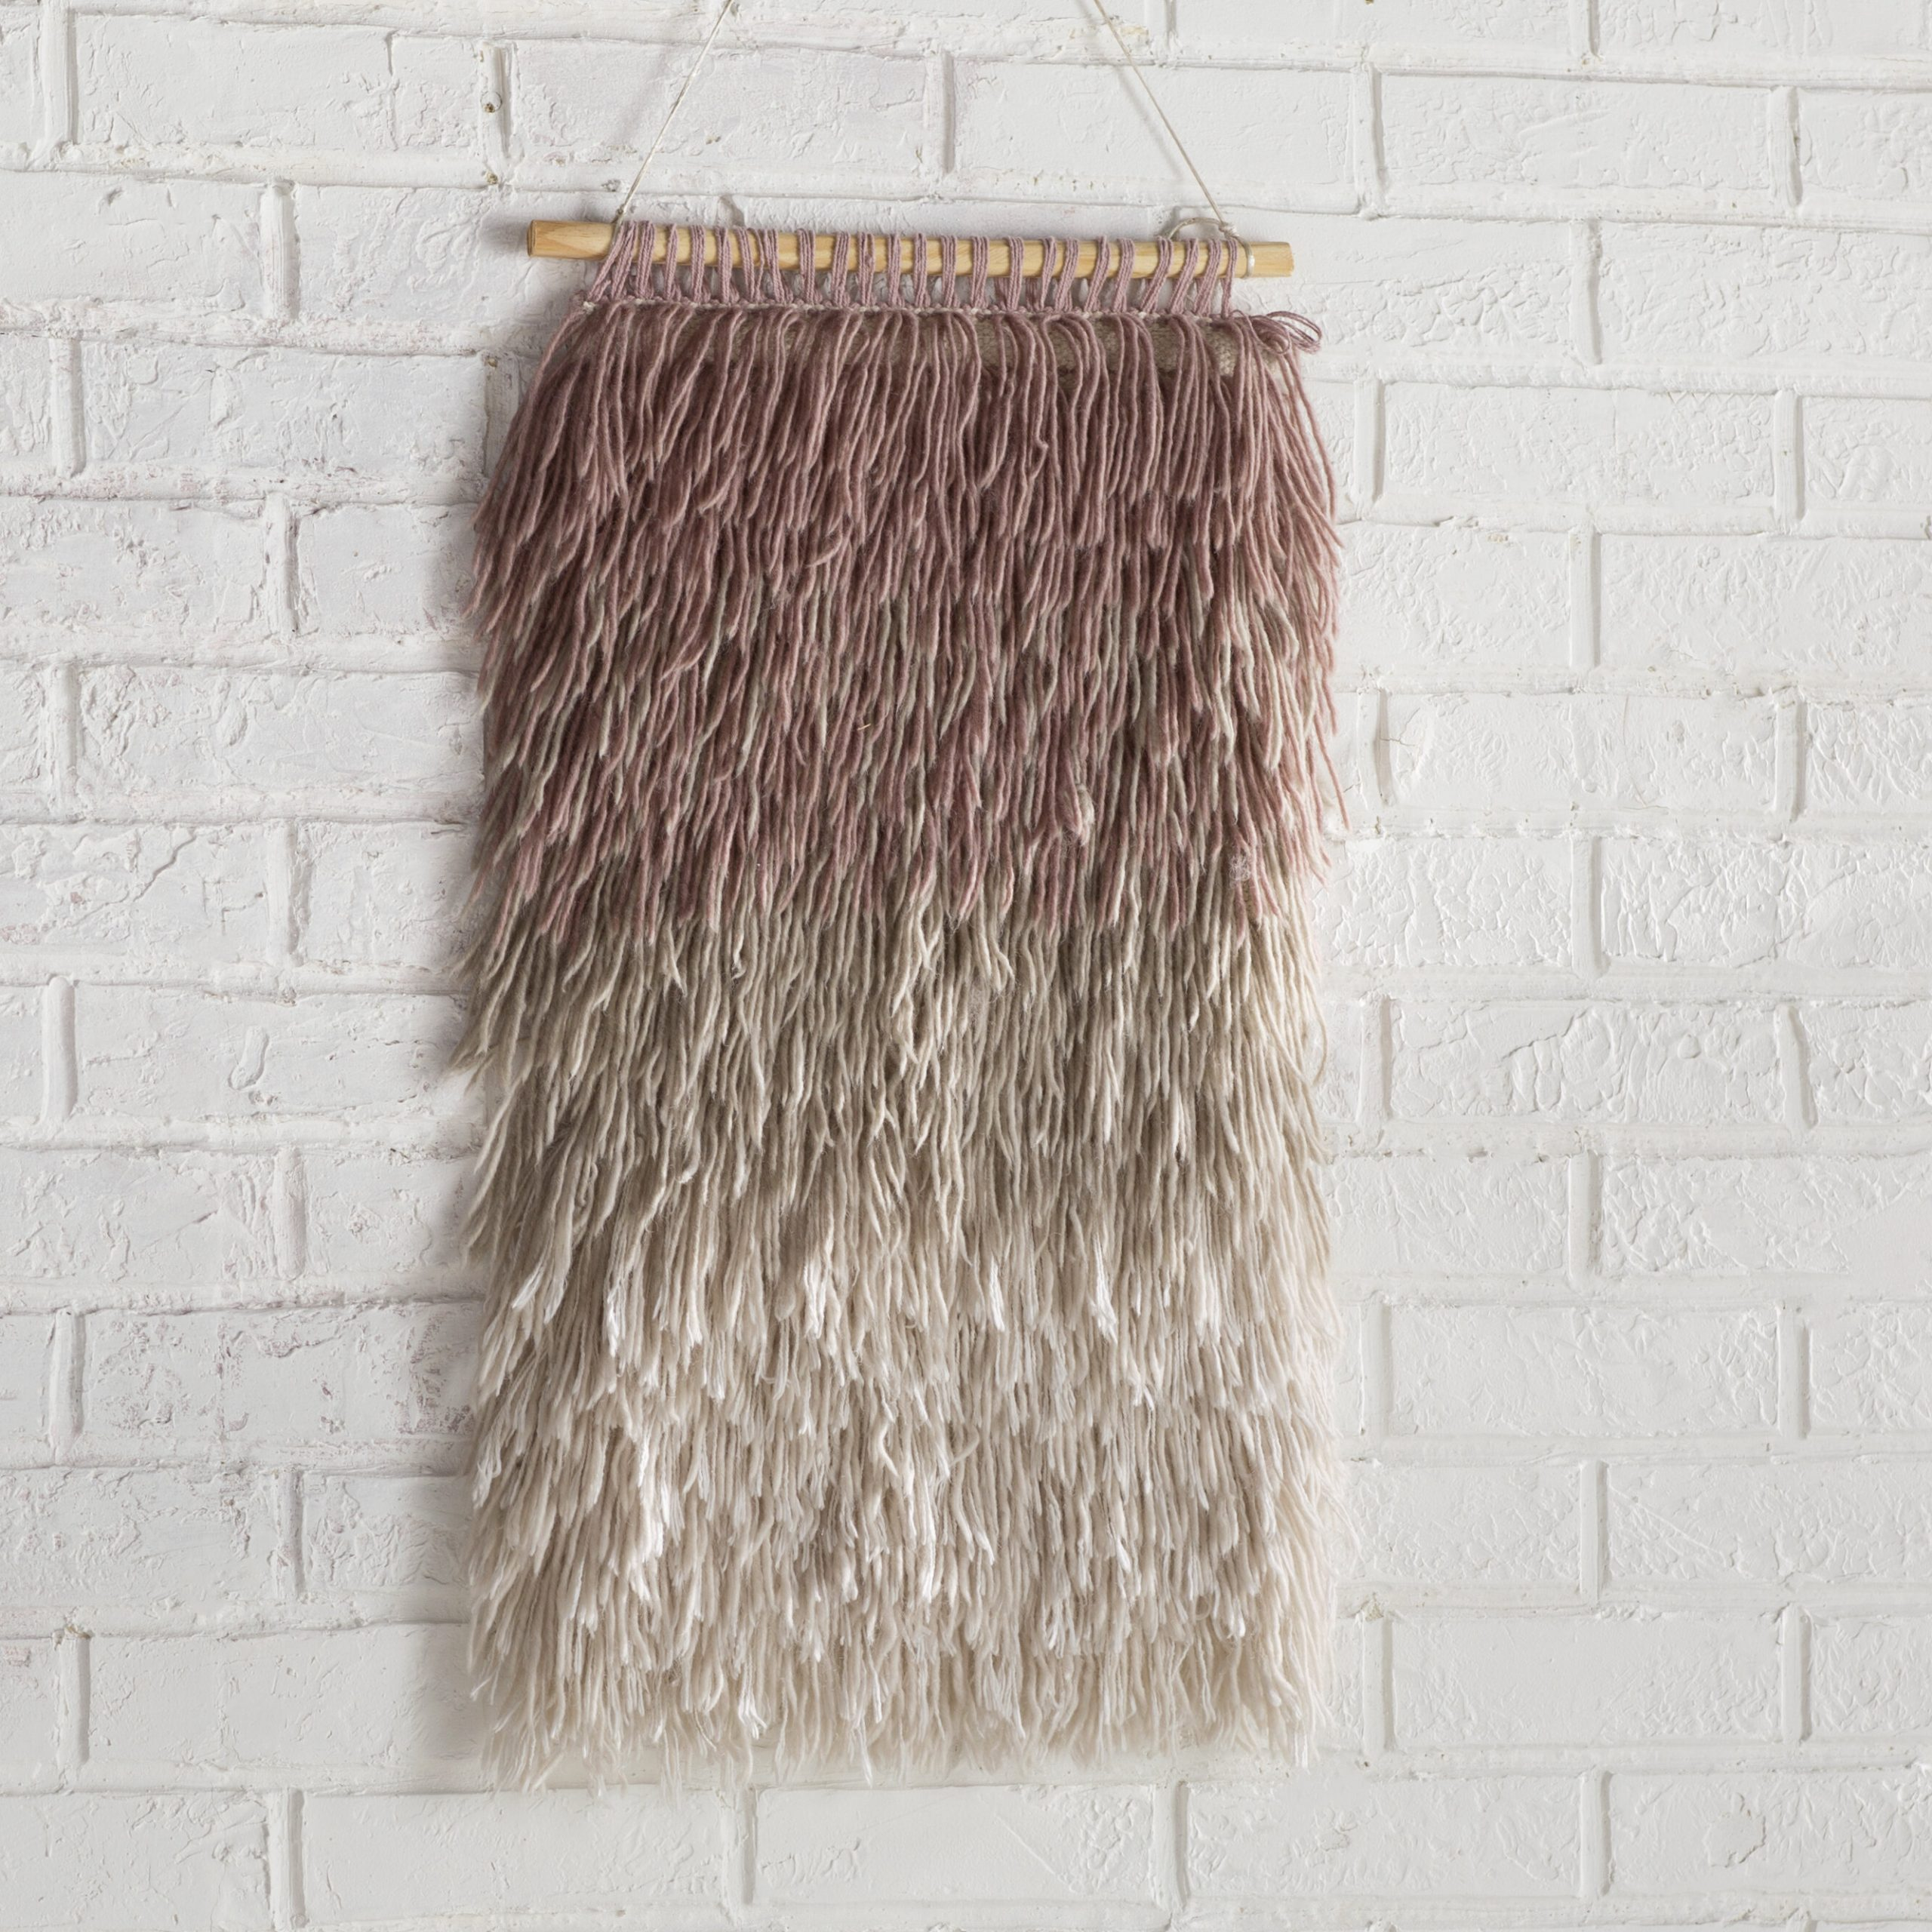 Destrie Wall Hanging With Rod Included With Most Popular Blended Fabric Saber Wall Hangings With Rod (View 2 of 20)